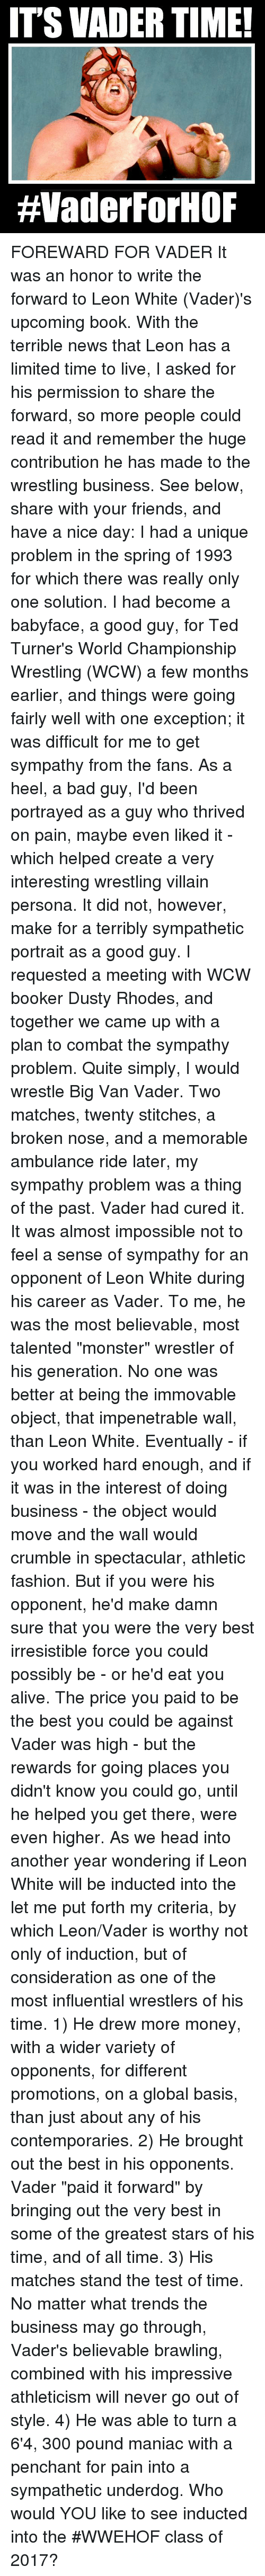 """Broughts: ITS VADER TIME!  HVaderForHOF FOREWARD FOR VADER It was an honor to write the forward to Leon White (Vader)'s upcoming book. With the terrible news that Leon has a limited time to live, I asked for his permission to share the forward, so more people could read it and remember the huge contribution he has made to the wrestling business.  See below, share with your friends, and have a nice day:  I had a unique problem in the spring of 1993 for which there was really only one solution. I had become a babyface, a good guy, for Ted Turner's World Championship Wrestling (WCW) a few months earlier, and things were going fairly well with one exception; it was difficult for me to get sympathy from the fans. As a heel, a bad guy,  I'd been portrayed as a guy who thrived on pain, maybe even liked it -  which helped create a very interesting wrestling villain persona. It did not, however, make for a terribly sympathetic portrait as a good guy.   I requested a meeting with WCW booker Dusty Rhodes, and together we came up with a plan to combat the sympathy problem. Quite simply, I would wrestle Big Van Vader. Two matches, twenty stitches, a broken nose, and a memorable ambulance ride later, my sympathy problem was a thing of the past. Vader had cured it.   It was almost impossible not to feel a sense of sympathy for an opponent of Leon White during his career as Vader. To me, he was the most believable, most talented """"monster"""" wrestler of his generation. No one was better at being the immovable object, that impenetrable wall, than Leon White.  Eventually - if you worked hard enough, and if it was in the interest of doing business - the object would move and the wall would crumble in spectacular, athletic fashion. But if you were his opponent, he'd make damn sure that you were the very best irresistible force you could possibly be - or he'd eat you alive. The price you paid to be the best you could be against Vader was high - but the rewards for going places you didn't k"""